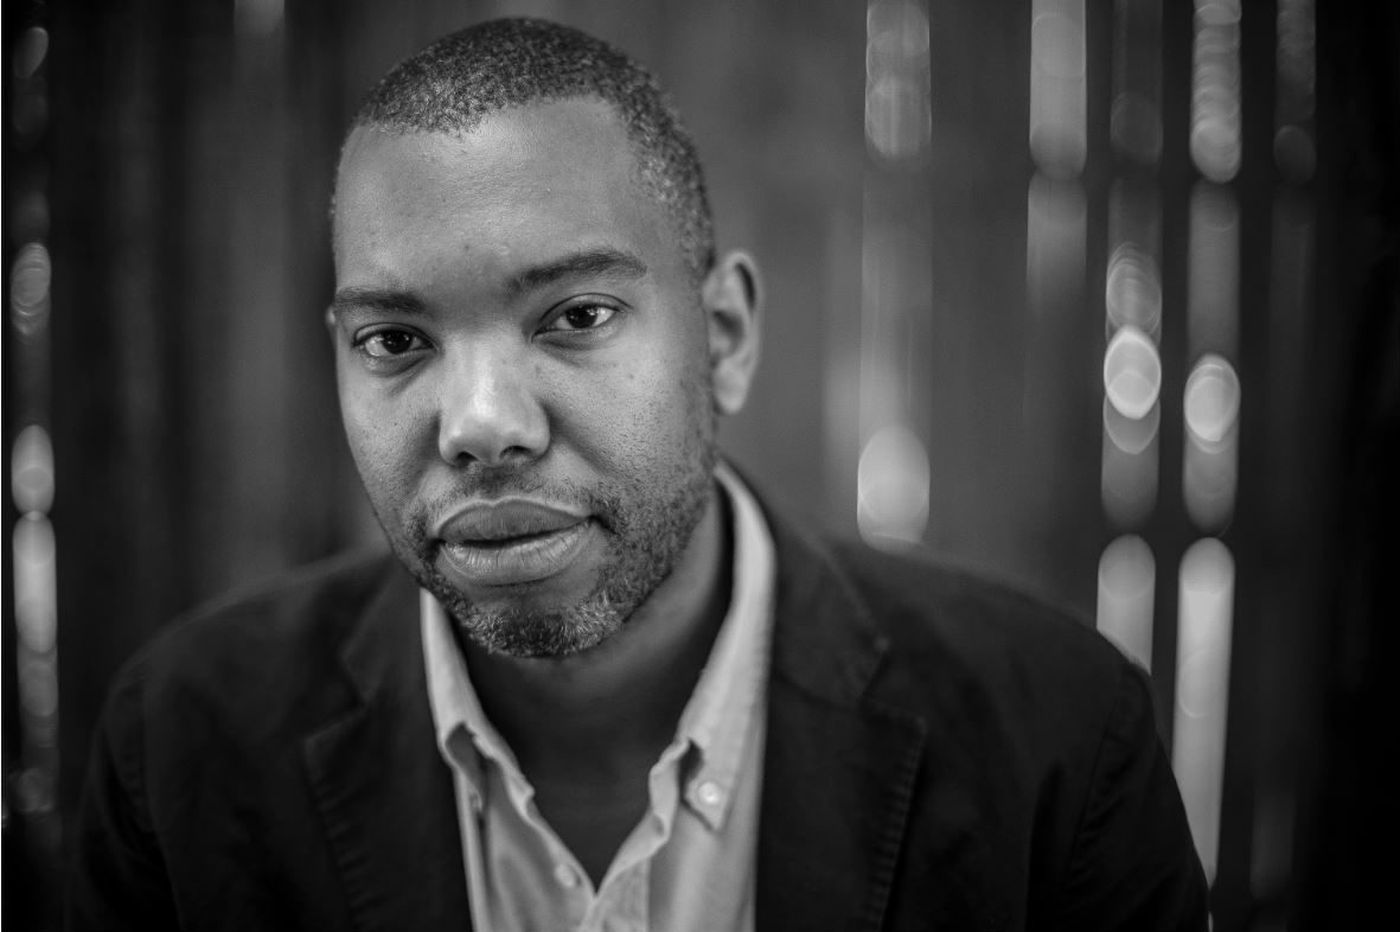 Ta-Nehisi Coates: What it's like to be expected to 'solve' our race problems